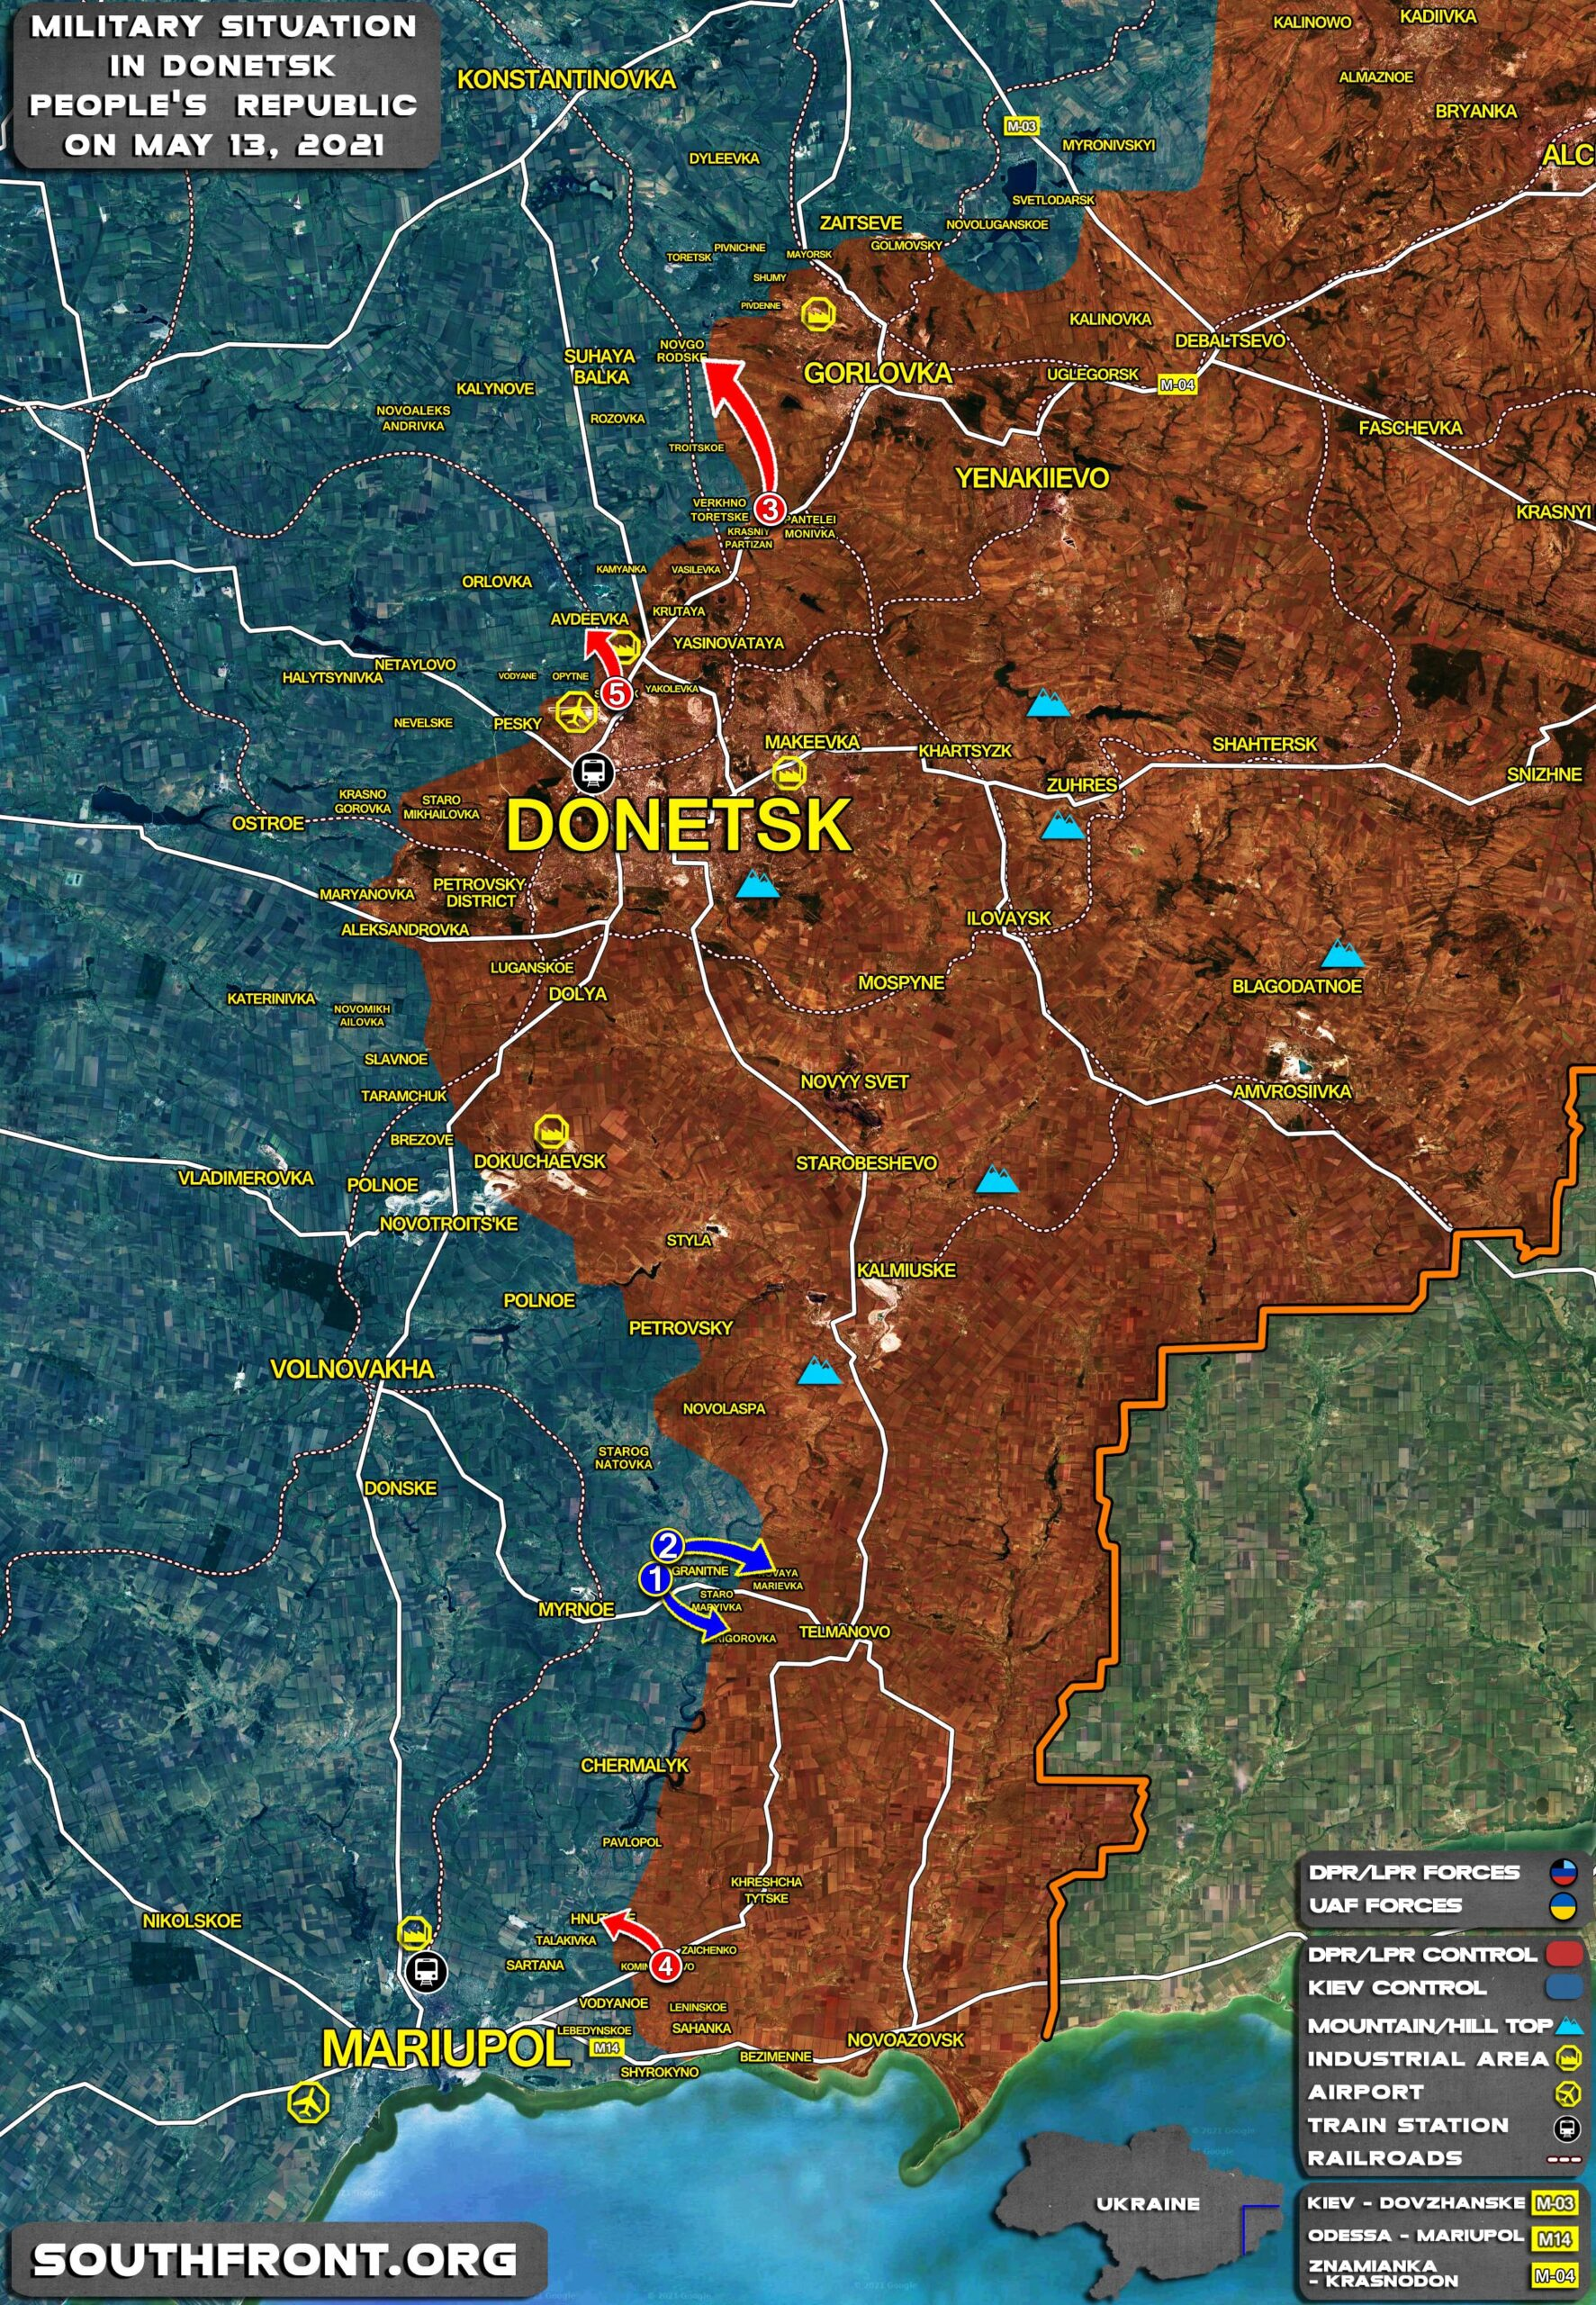 Military Situation In Donetsk People's Republic On May 13, 2021 (Map Update)